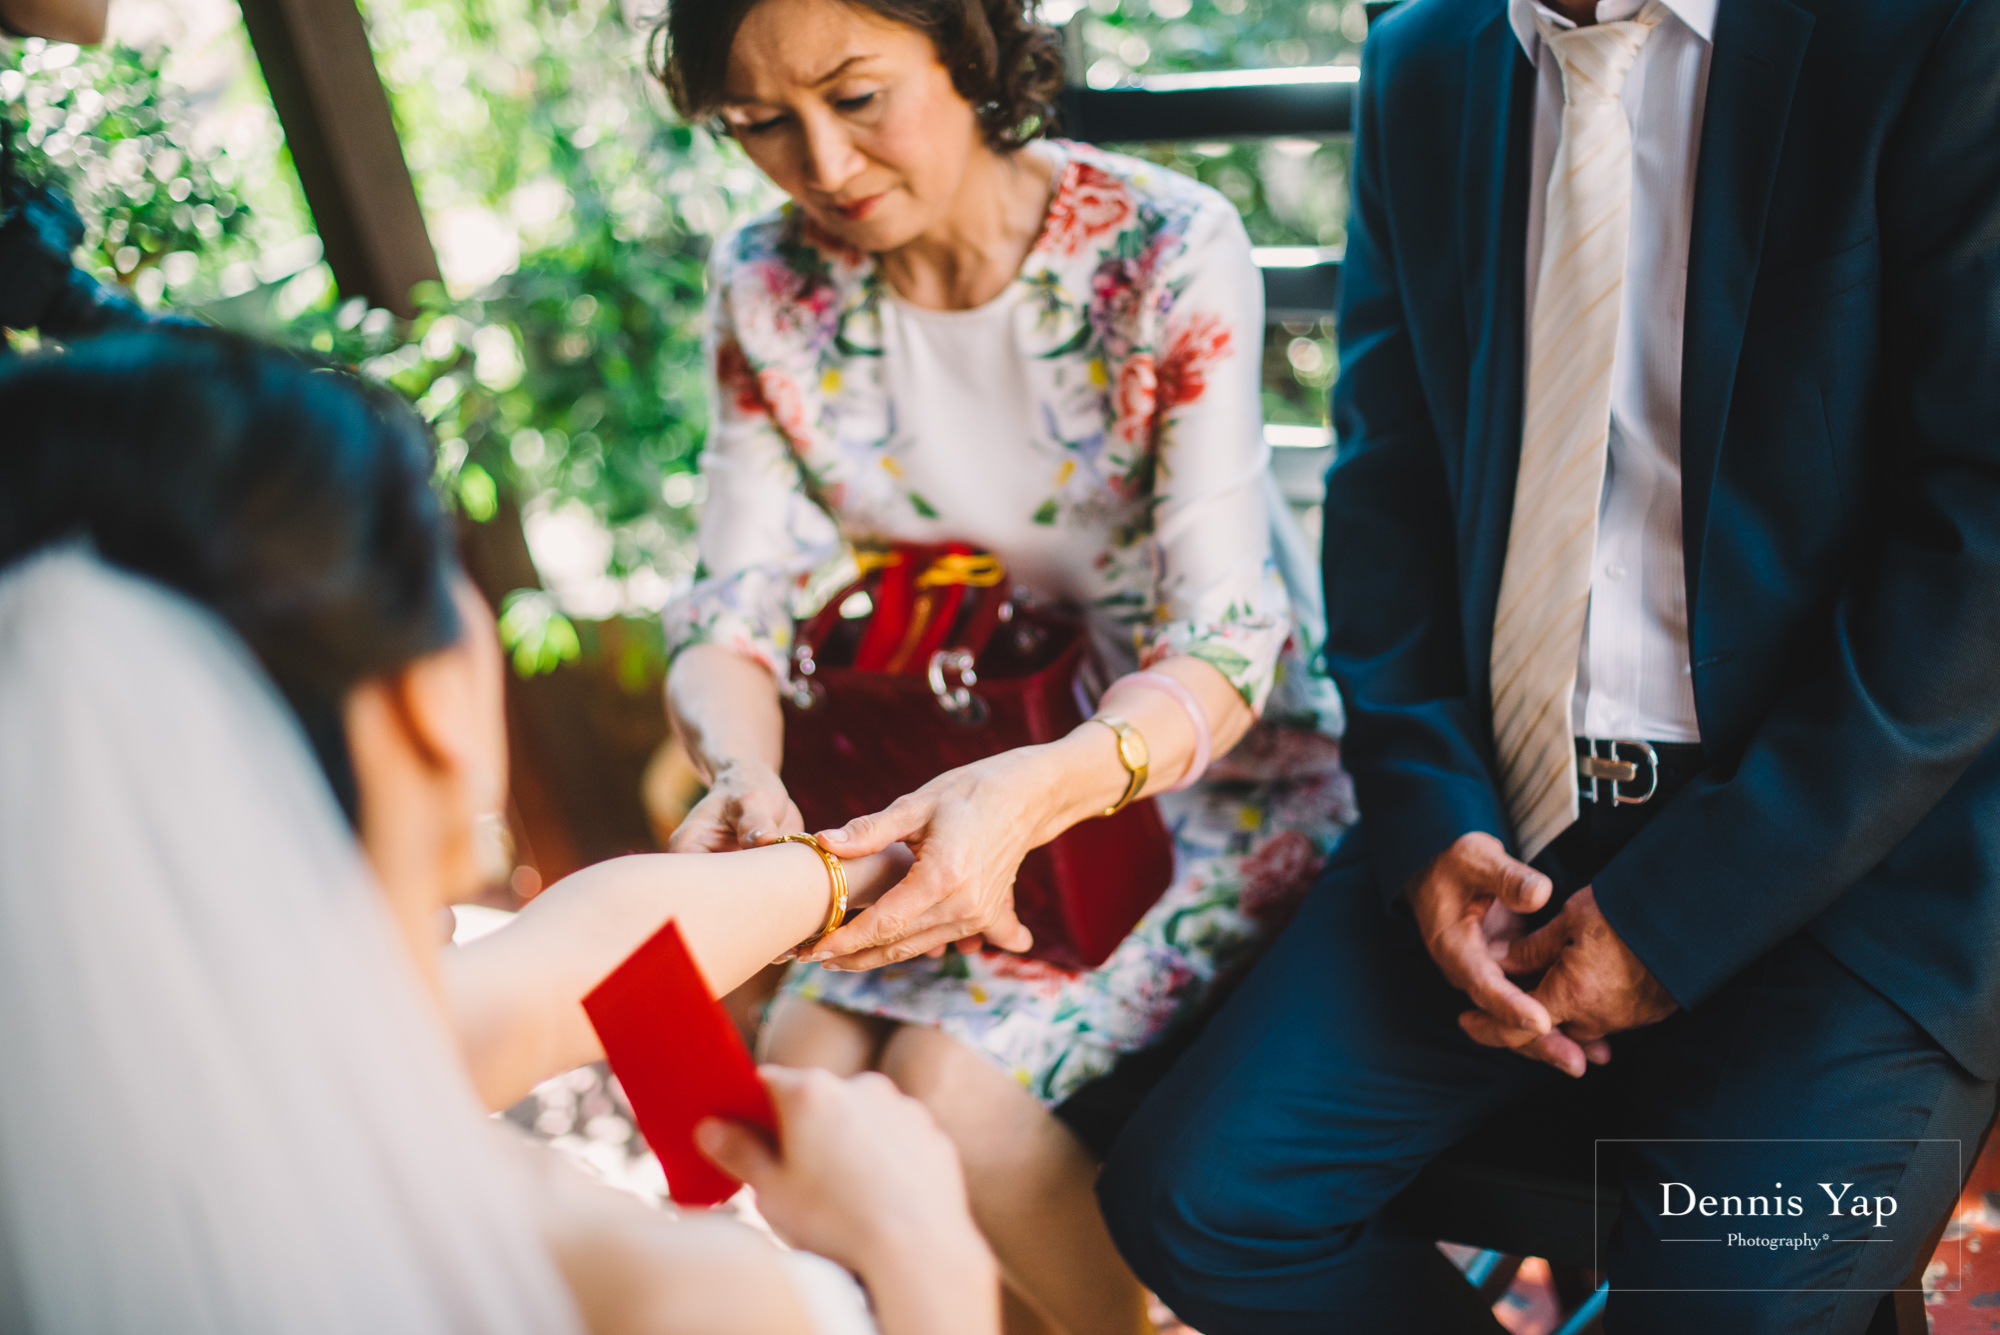 ethan janet perth wedding reception and garden ceremony in lamonts dennis yap photography-12.jpg